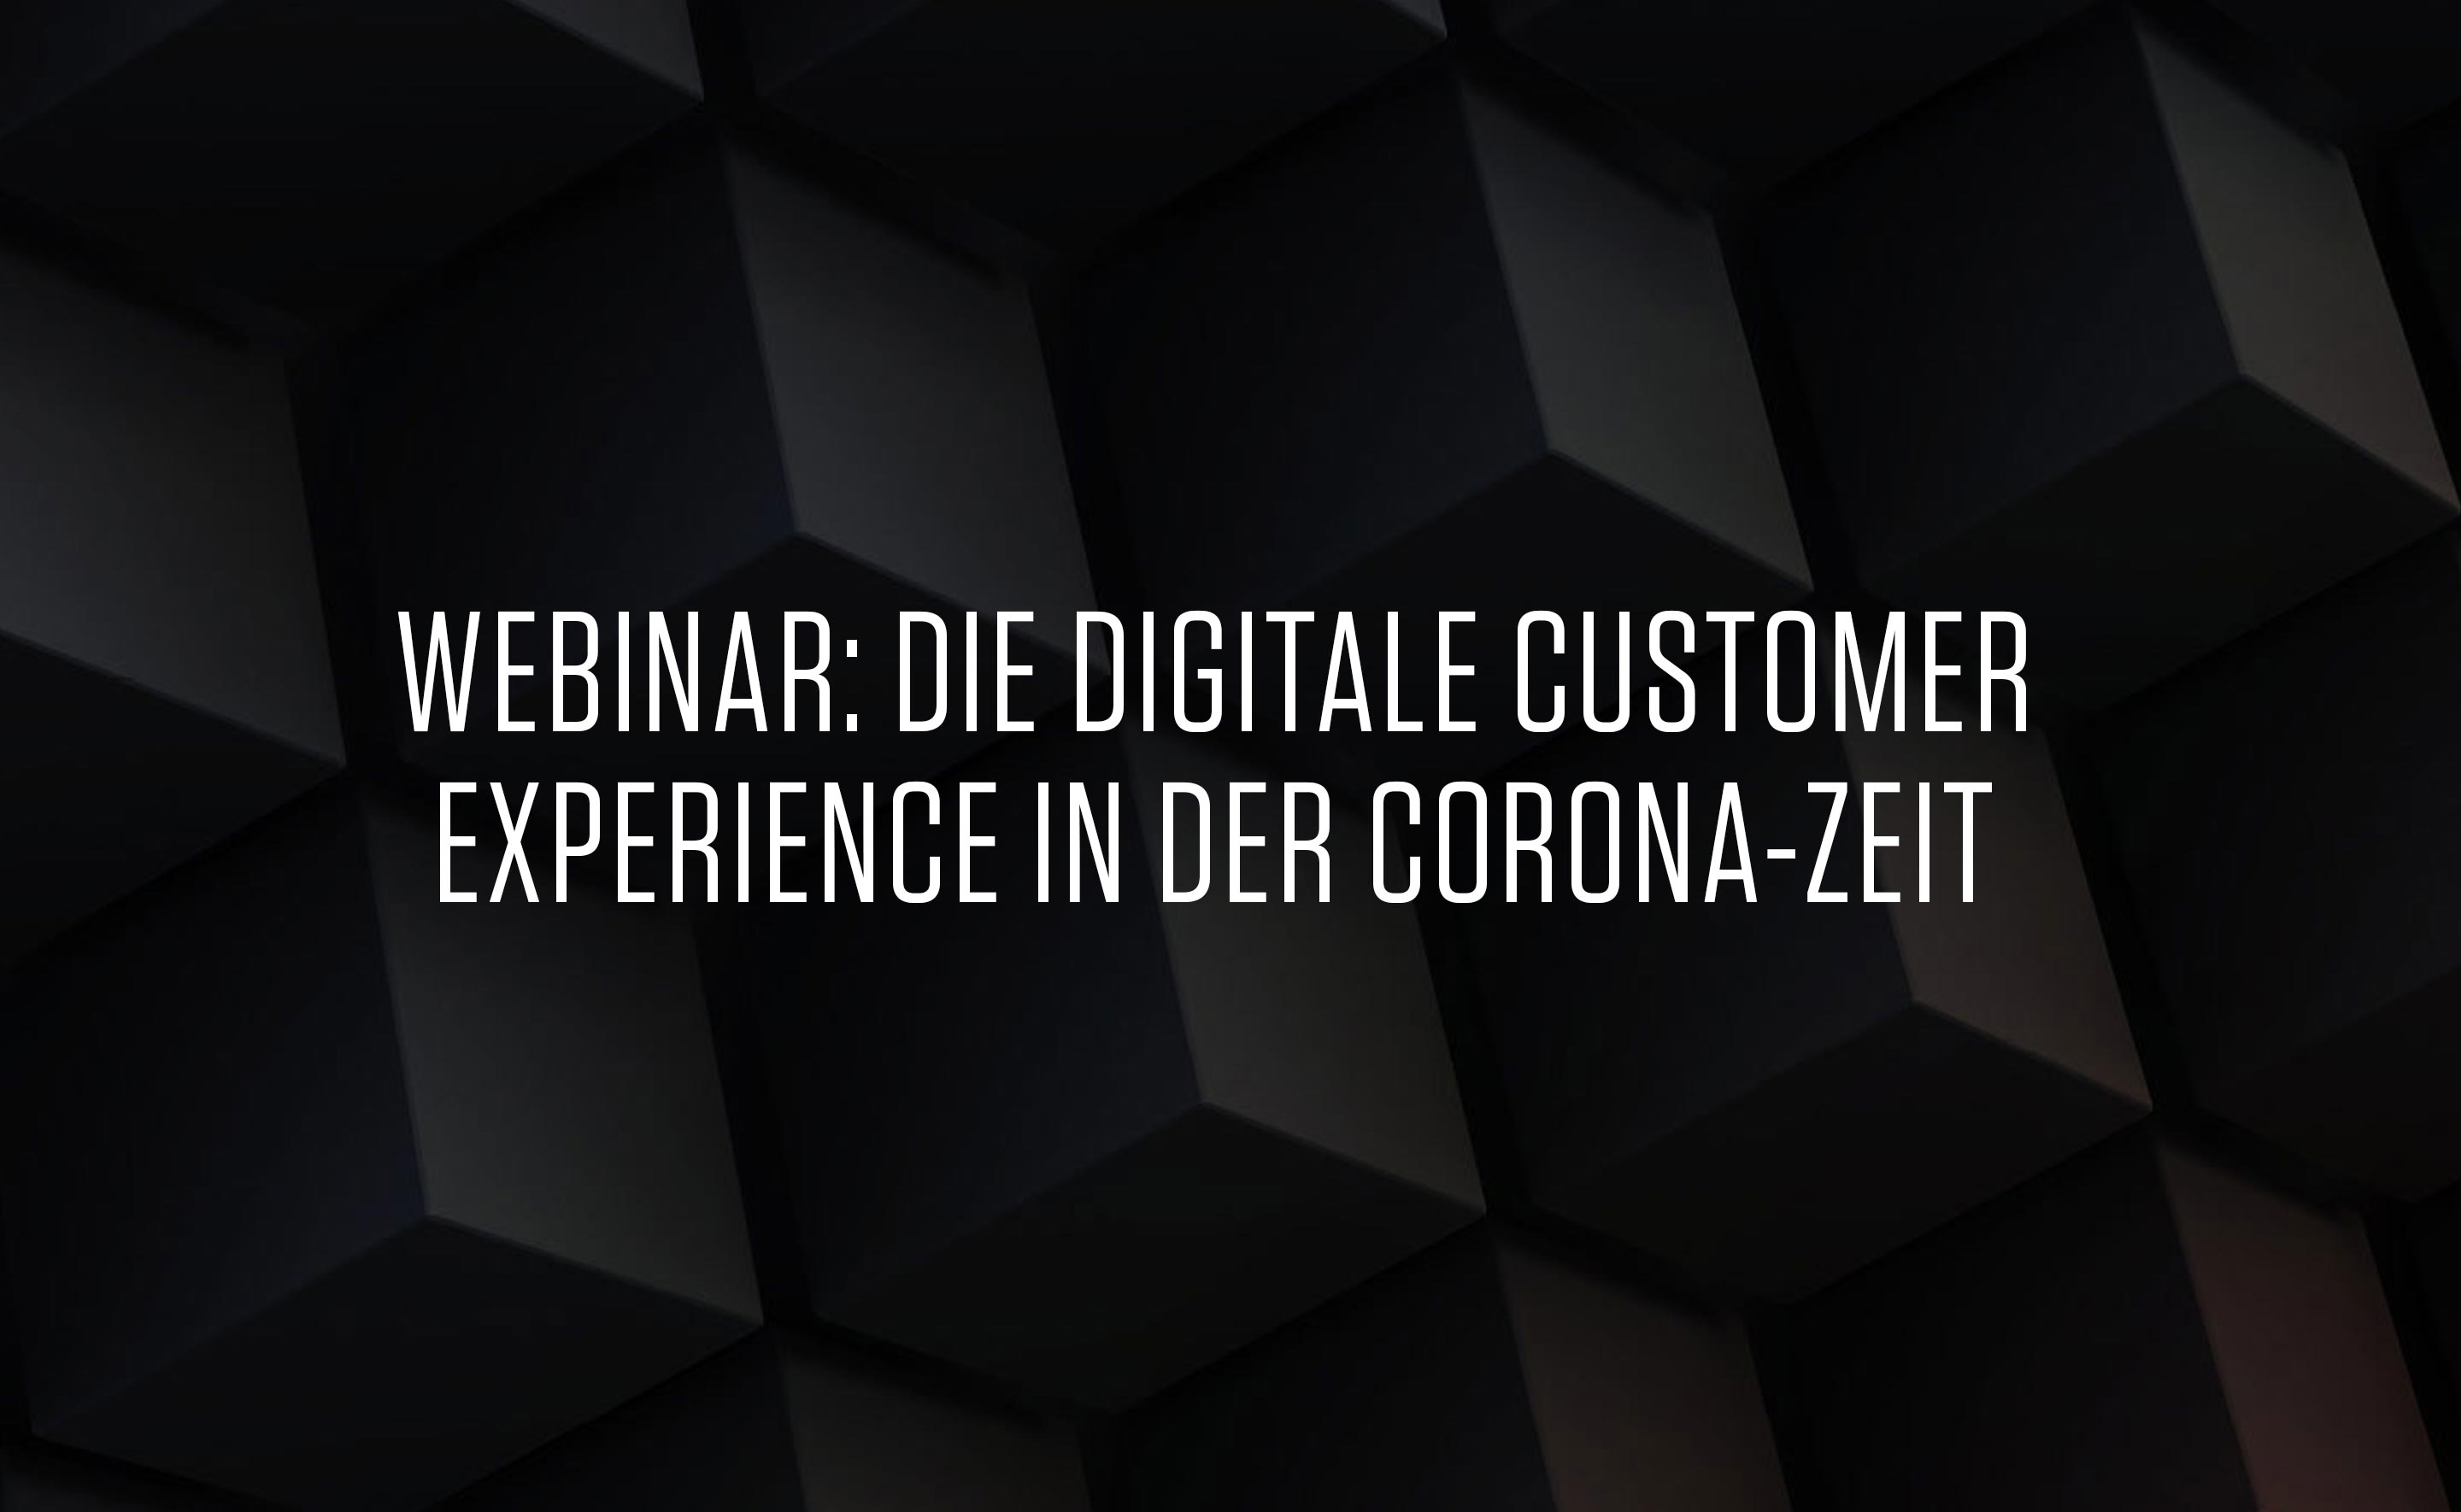 WEBINAR: DIE DIGITALE CUSTOMER EXPERIENCE IN DER CORONA-ZEIT